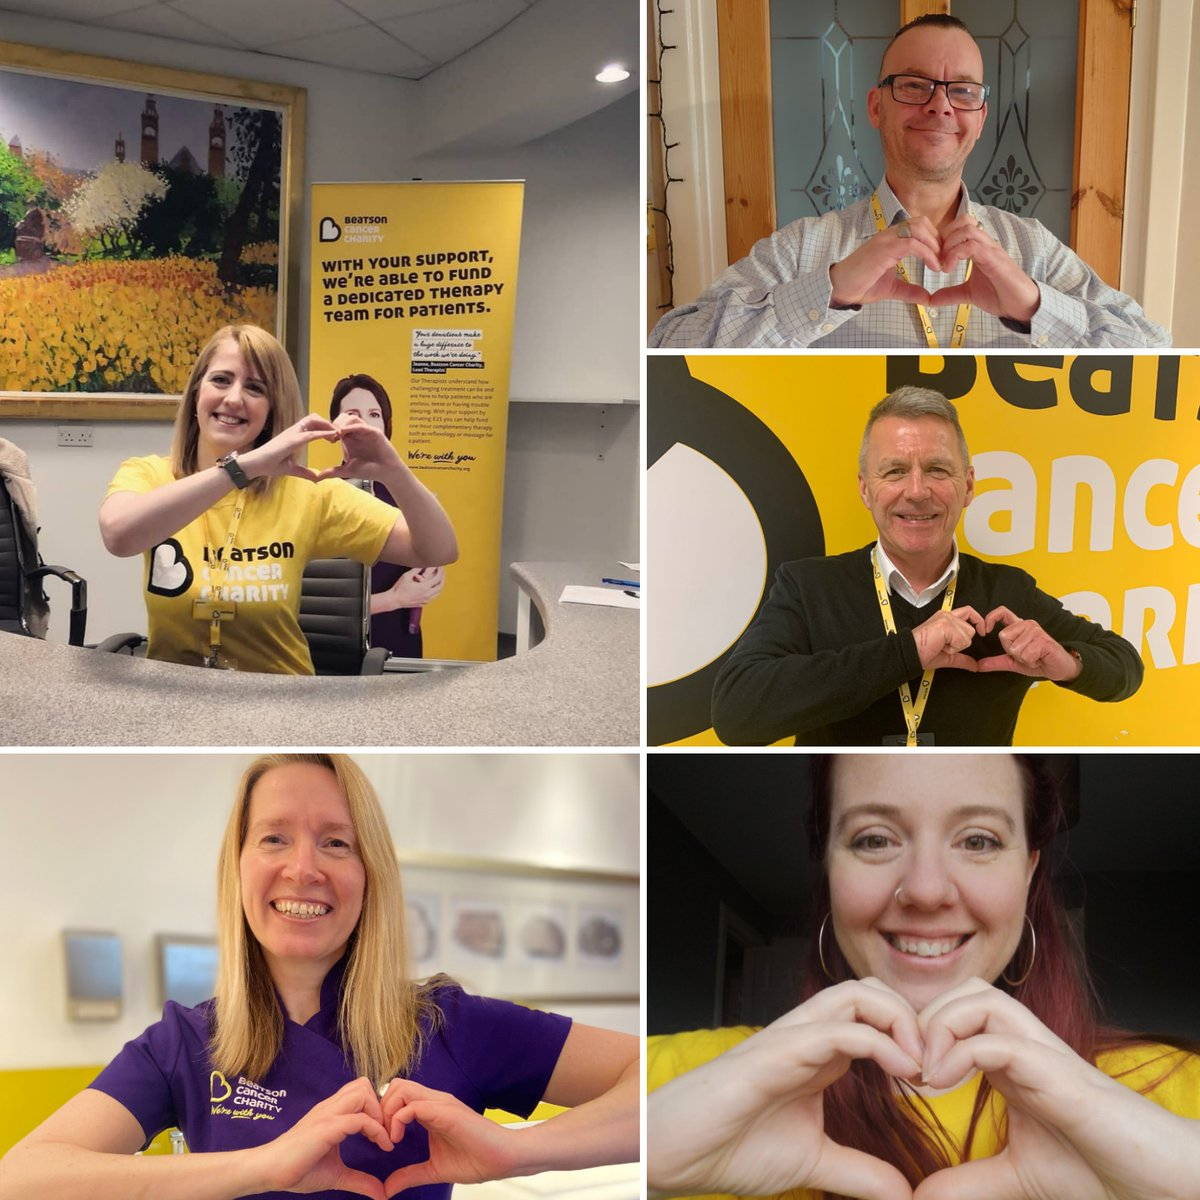 #Werewithyou  💛Staff at The Beatson are welcome into our Wellbeing Centre  💛Our Friendly Welcome Desk still there for patients  💛 Wellbeing & SHAWS online support will be available via web & social  If you can please support us at this difficult time: